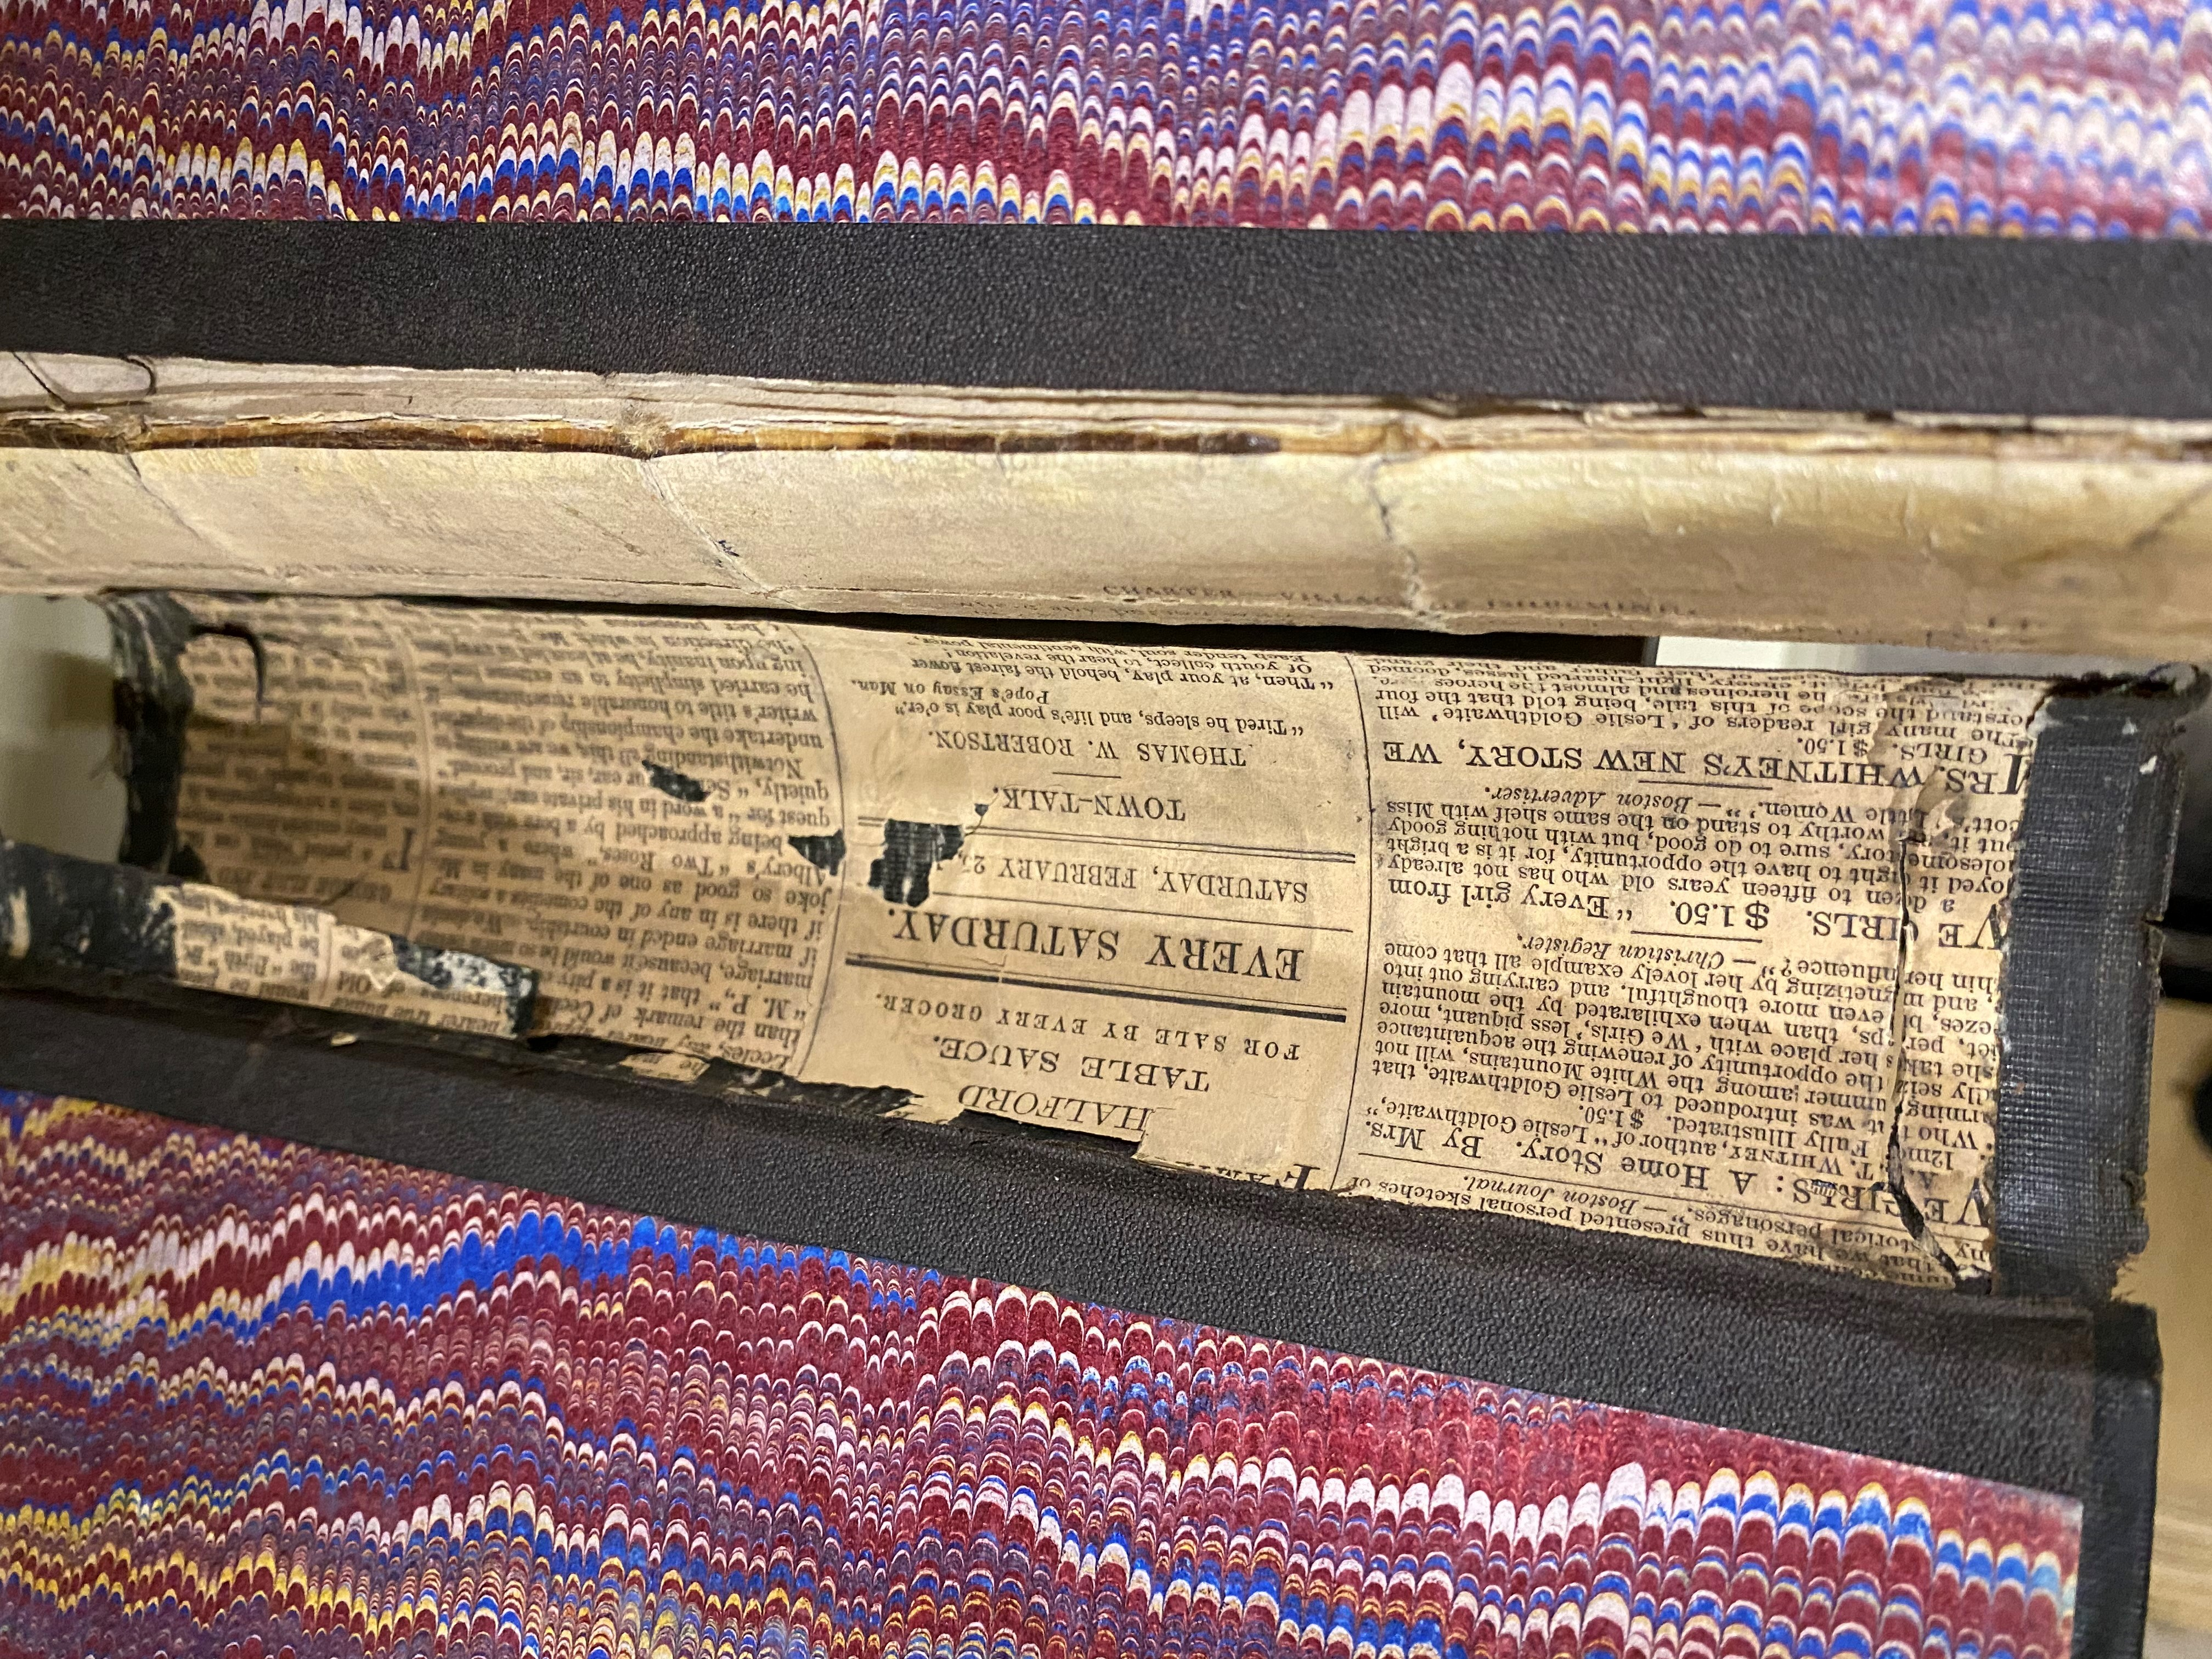 1866 volume showing how old newspaper was used to reinforce the spine